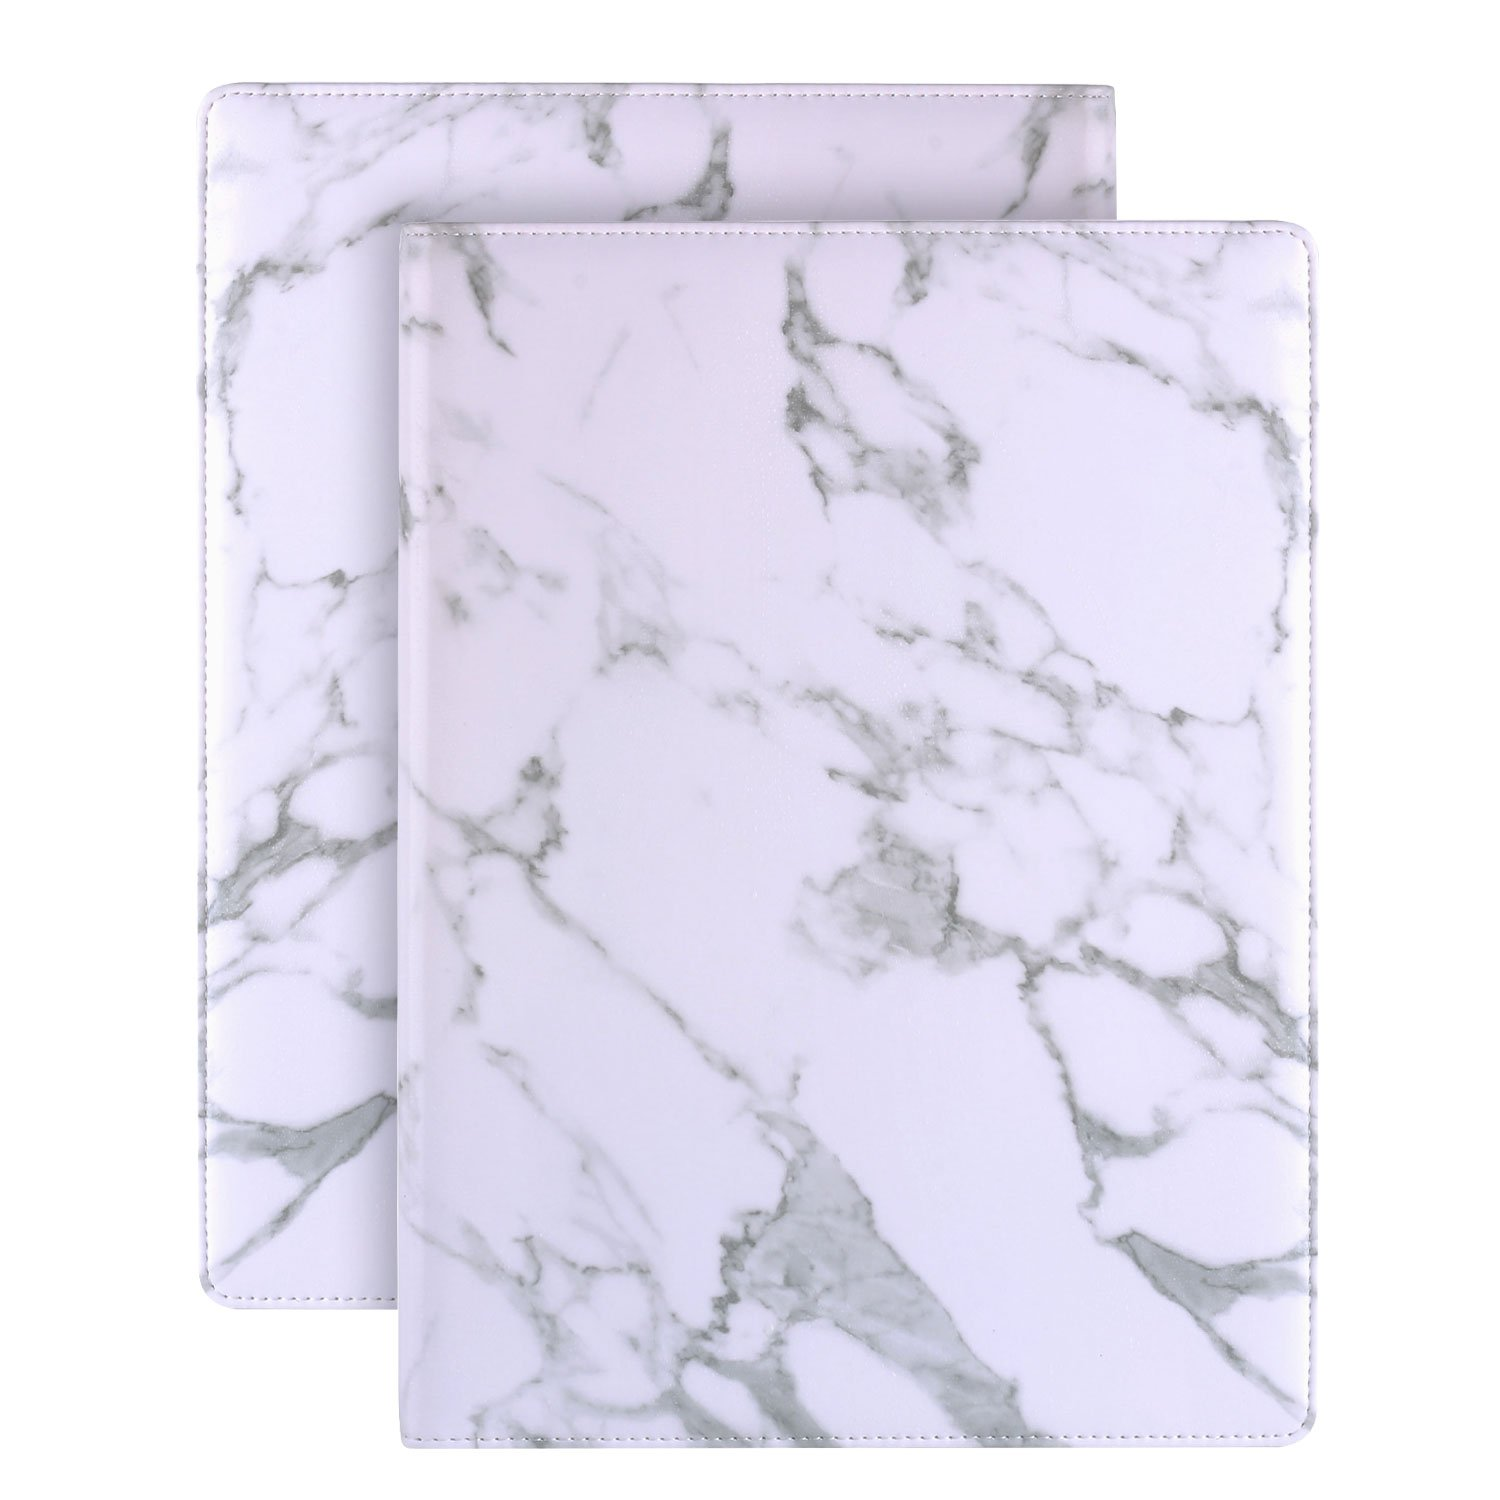 Plinrise Luxury Marble Portfolio File Folder Document Resume Organizer,Padfolio File Holder Folders Letter Size,Clipboard Folder with Writing Pad,Black Marbling … (White)